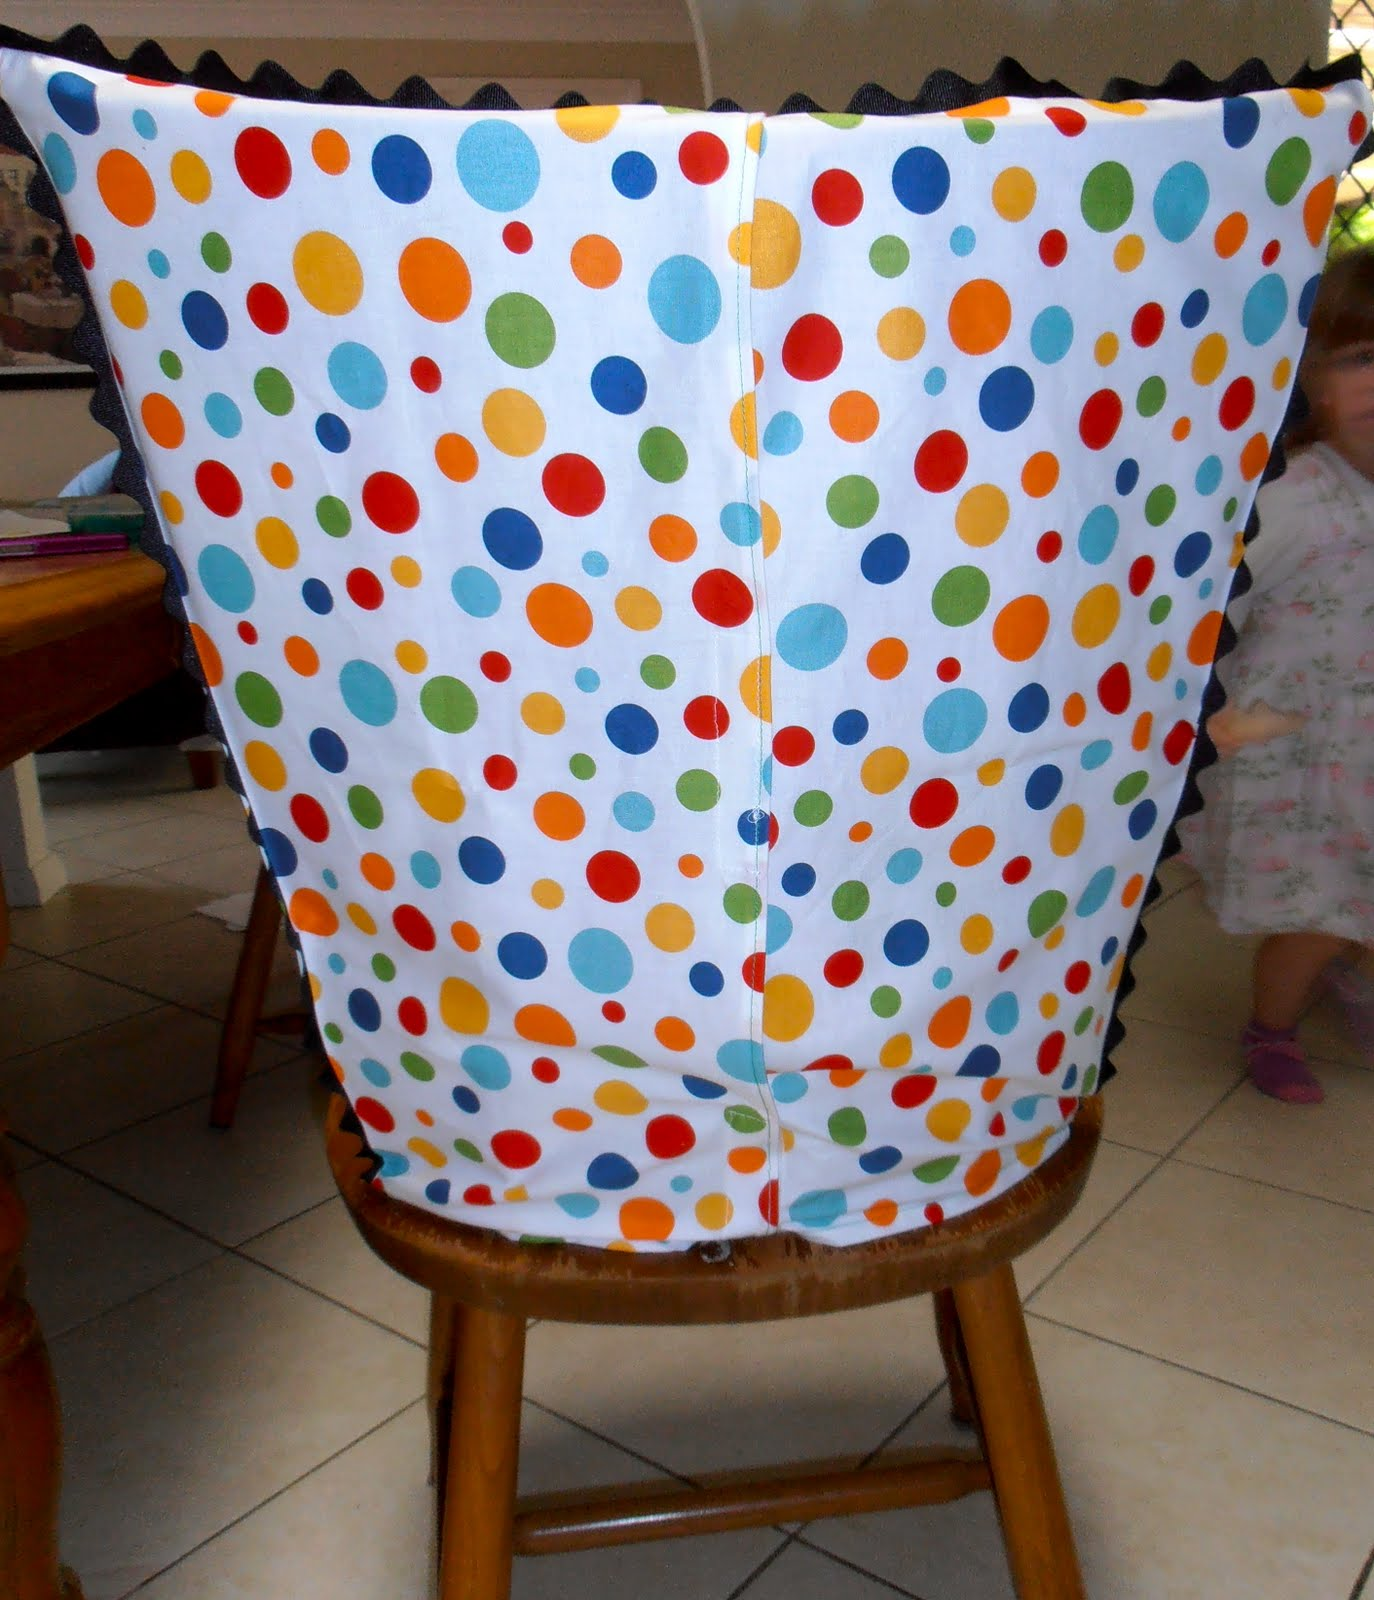 Giggleberry Creations!: It's My Birthday Chair Cover